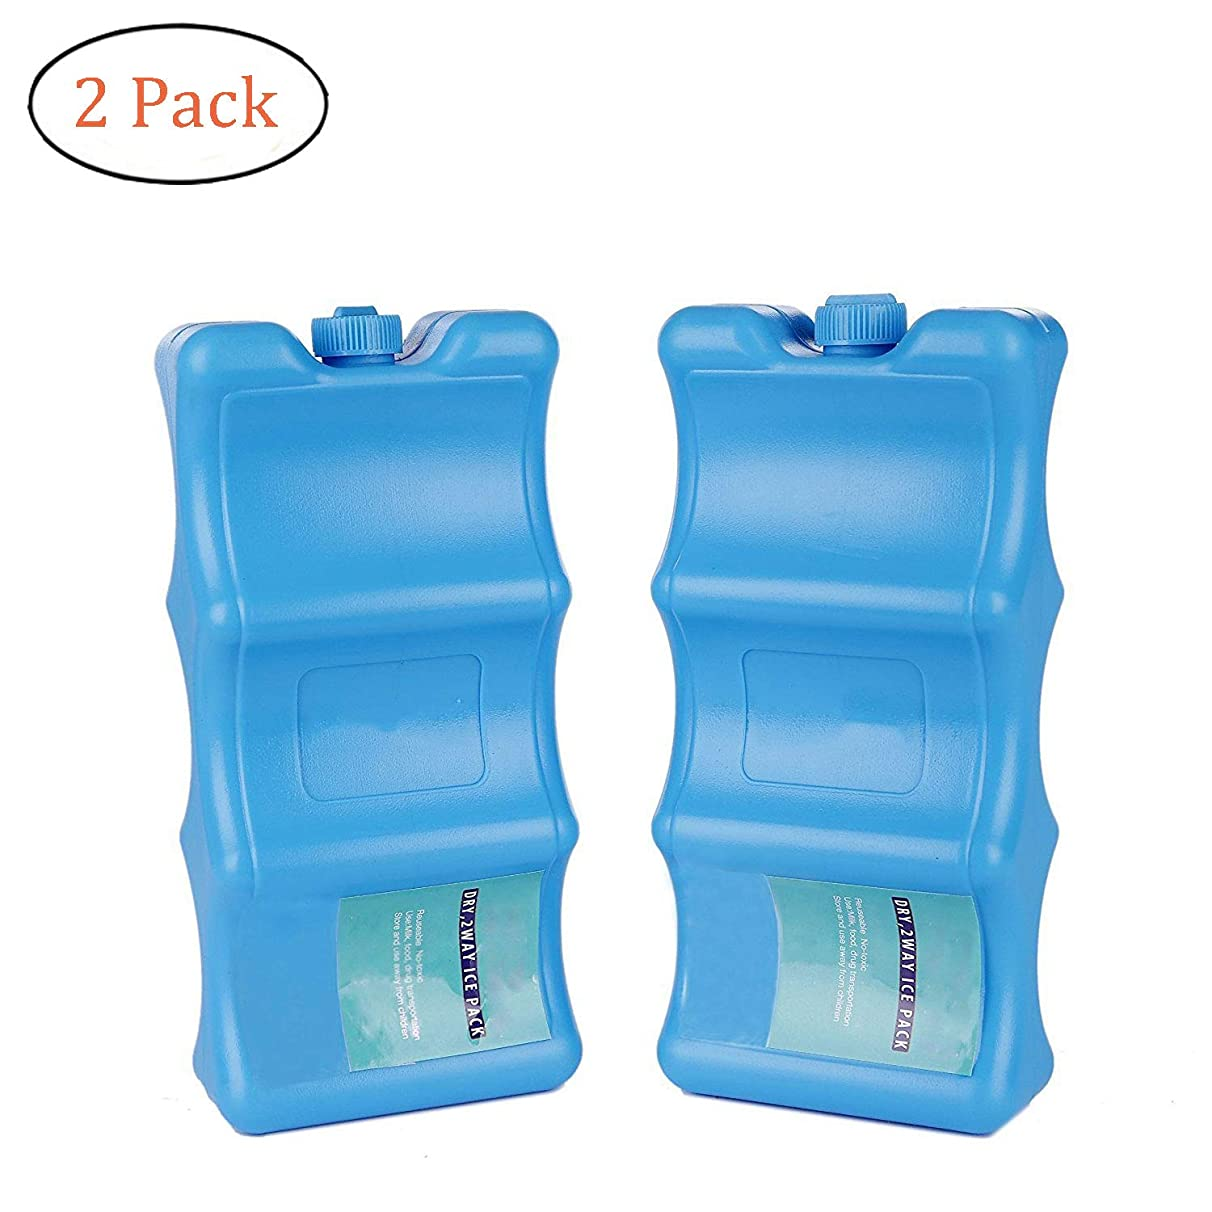 SRHOME 2 Pack Cool Coolers Ice Packs for Lunch Boxes,Reusable Lunch Ice Packs for Coolers,Two-Way Wave Shape Keep Food Breast Milk Drink Fresh &Cold- Outdoor Events, Picnic, Fishing & Camping Trips